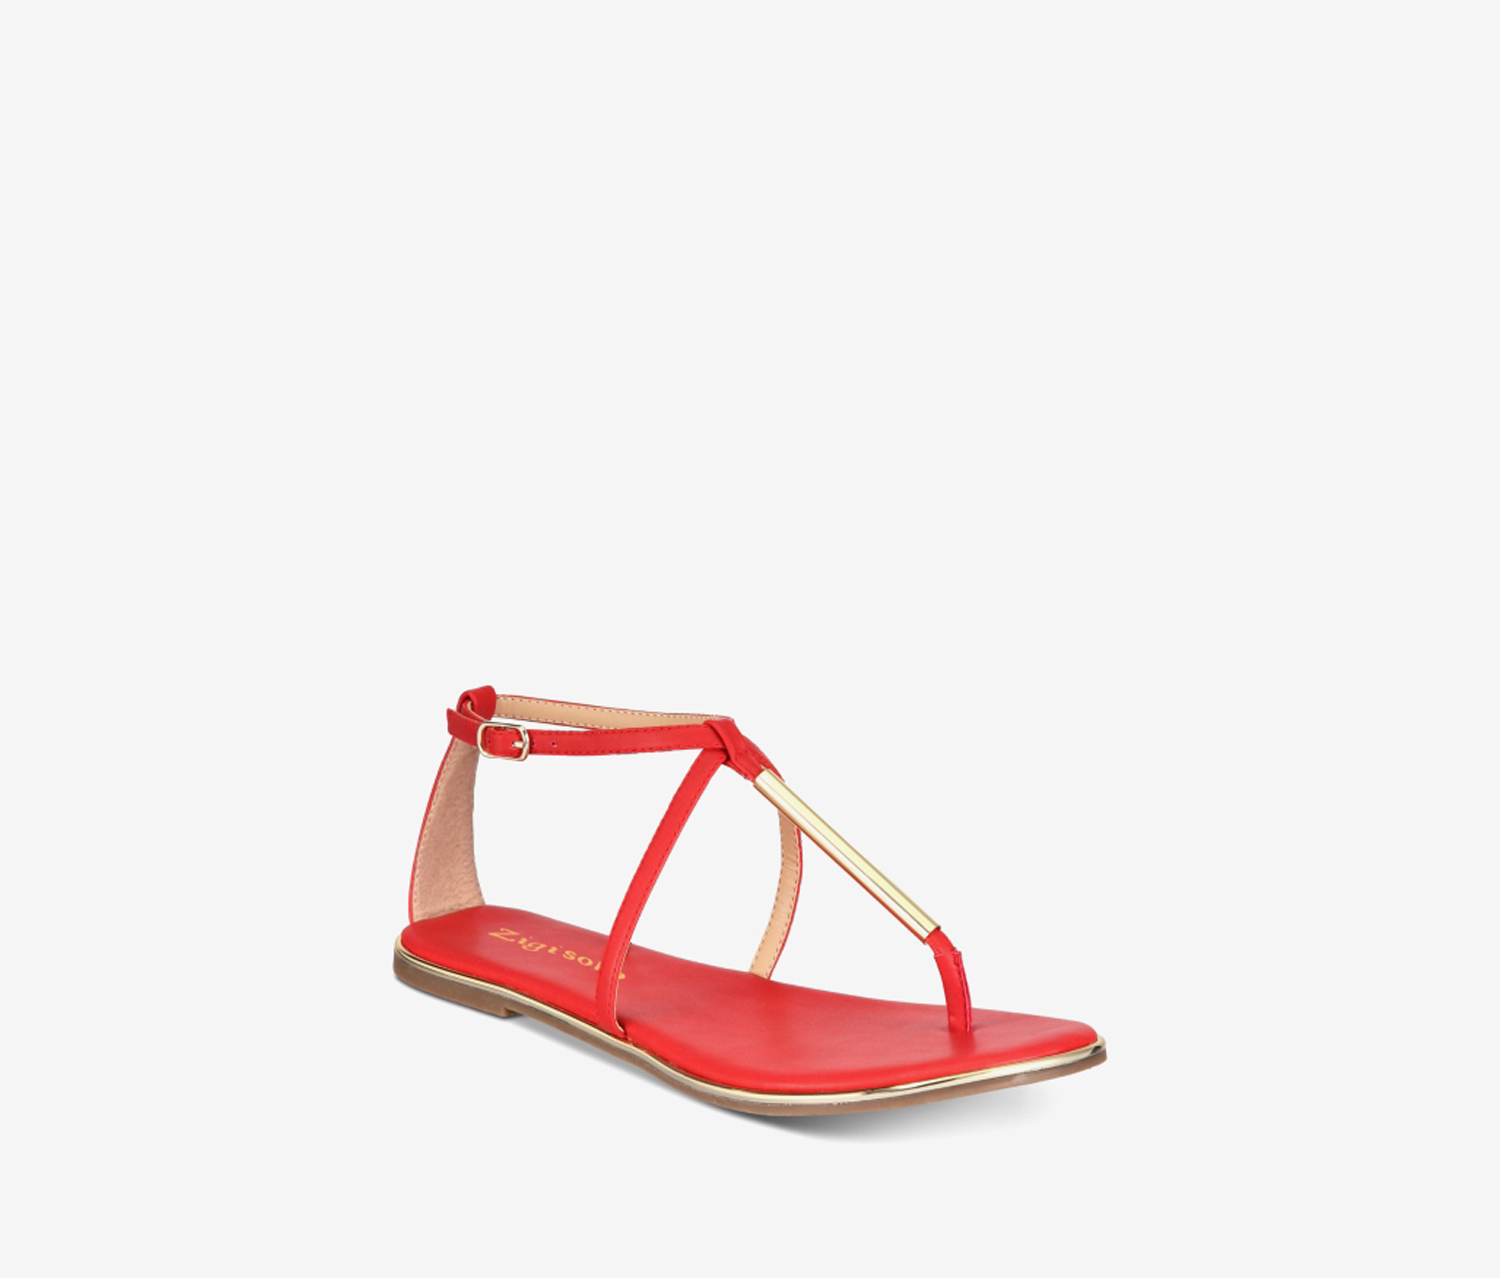 Women's Janette Split Toe Casual Ankle Strap Sandals, Red